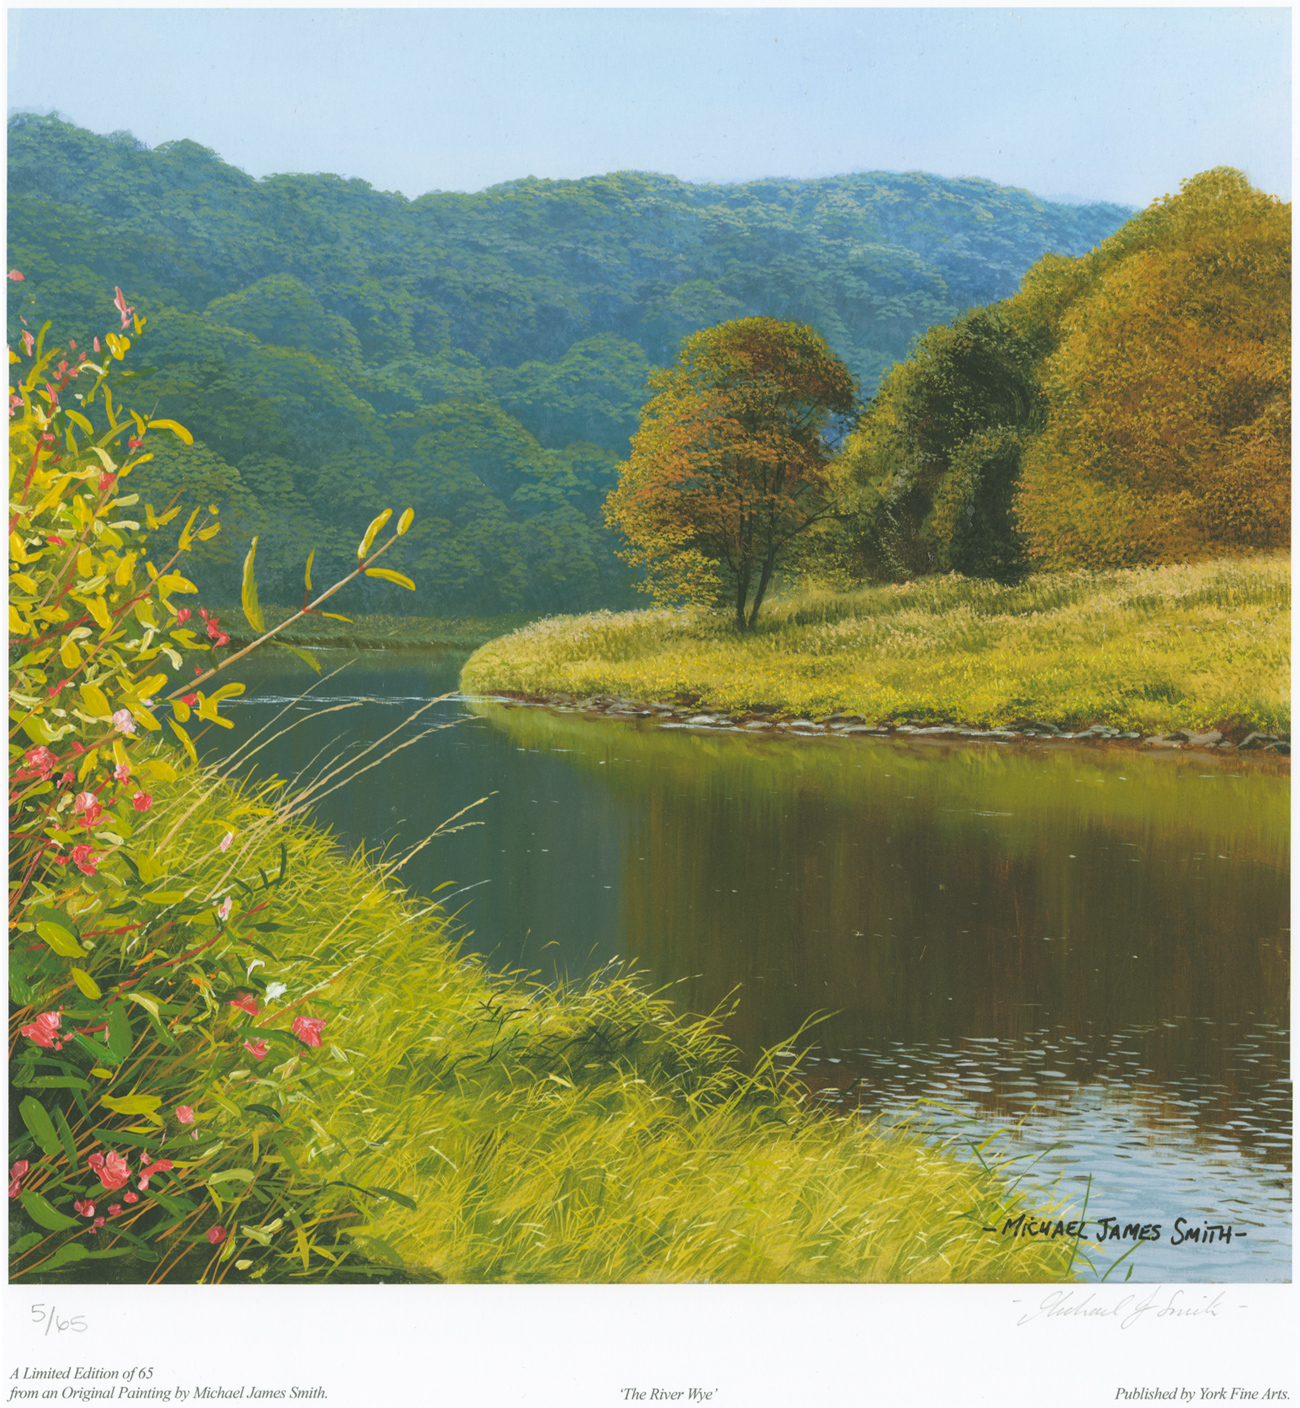 Michael James Smith, Signed limited edition print, The River Wye. Click to enlarge